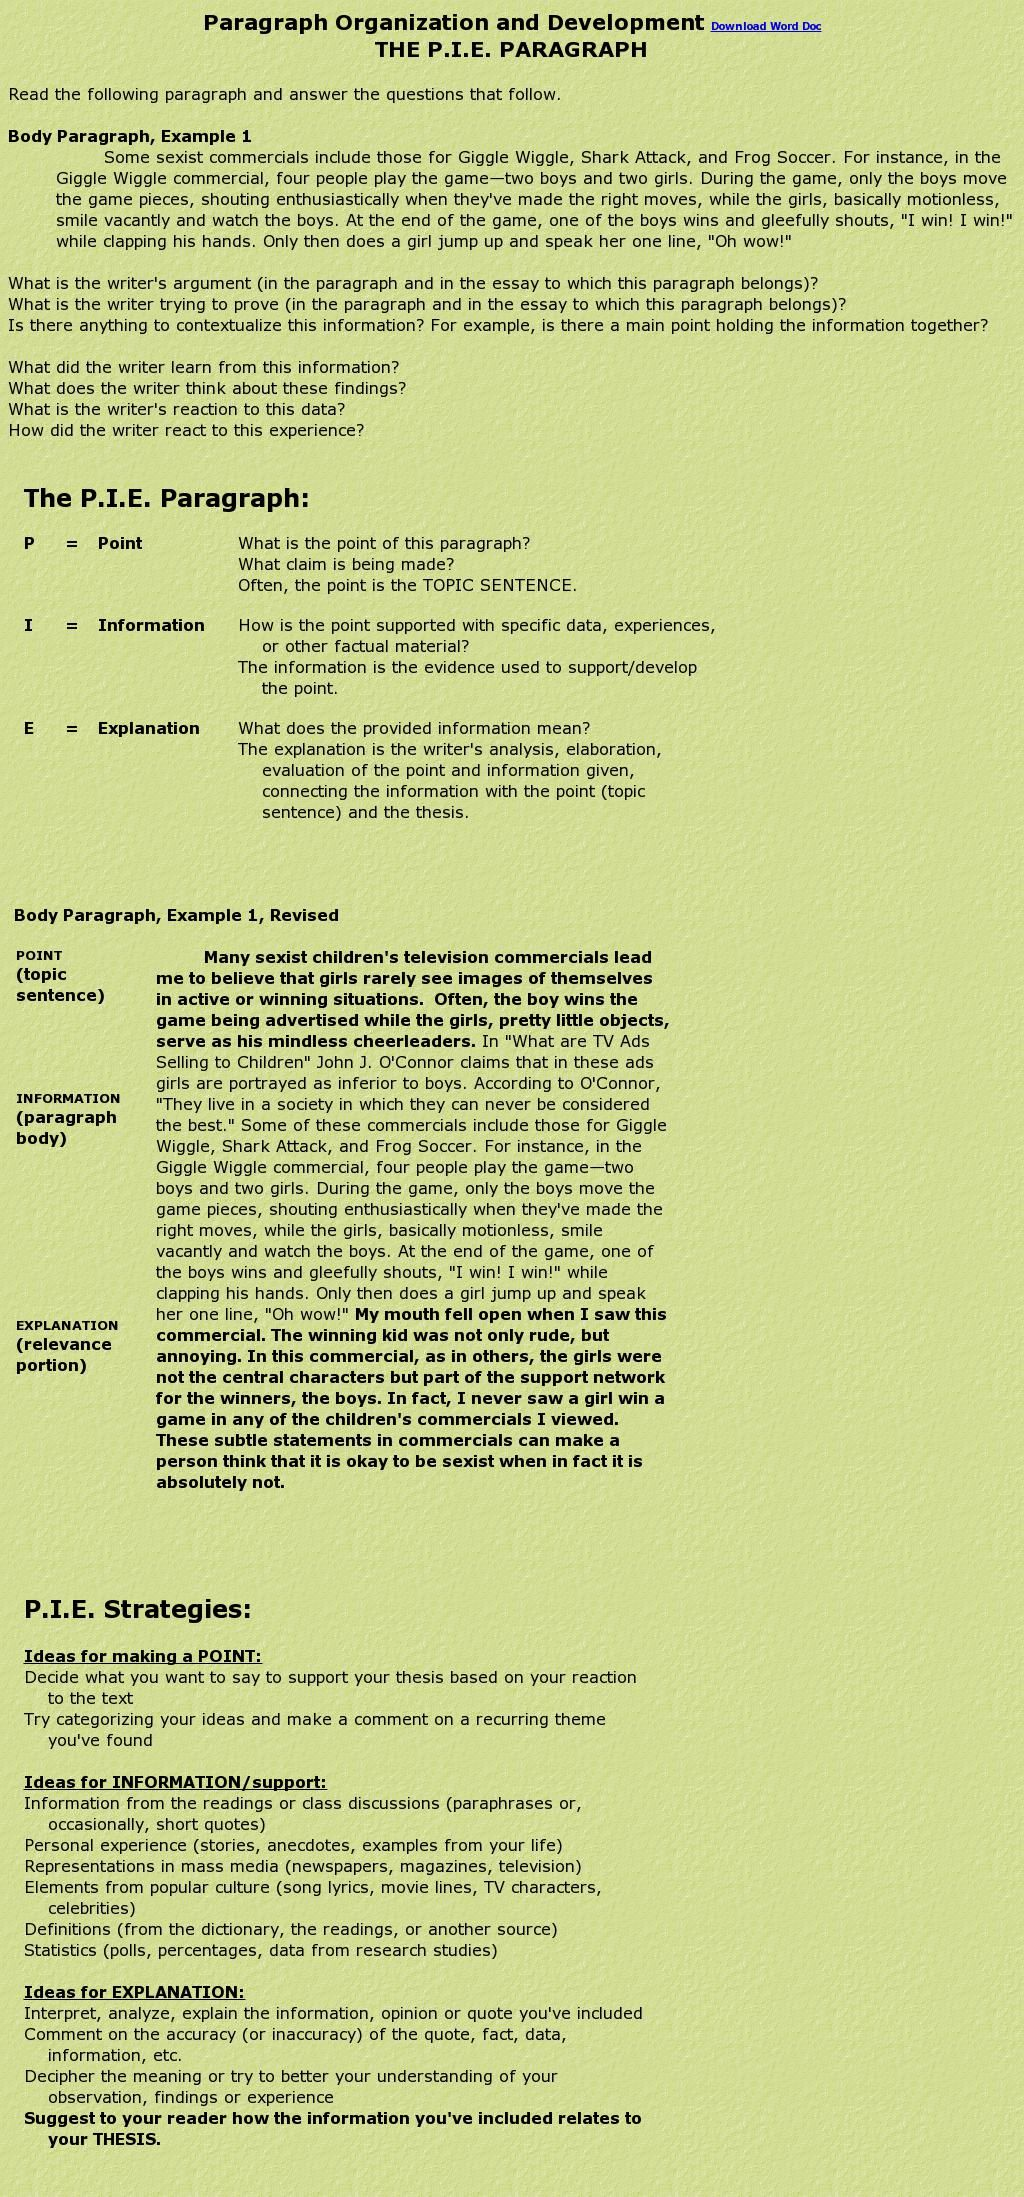 Pie Paragraph The Website Http Jonsenglishsite Info Pieparagraph Htm Courtesy Of Pinstamatic Pi Topic Sentence Writing Instruction Learn English Teaching Paraphrasing With Song Lyrics Lyric